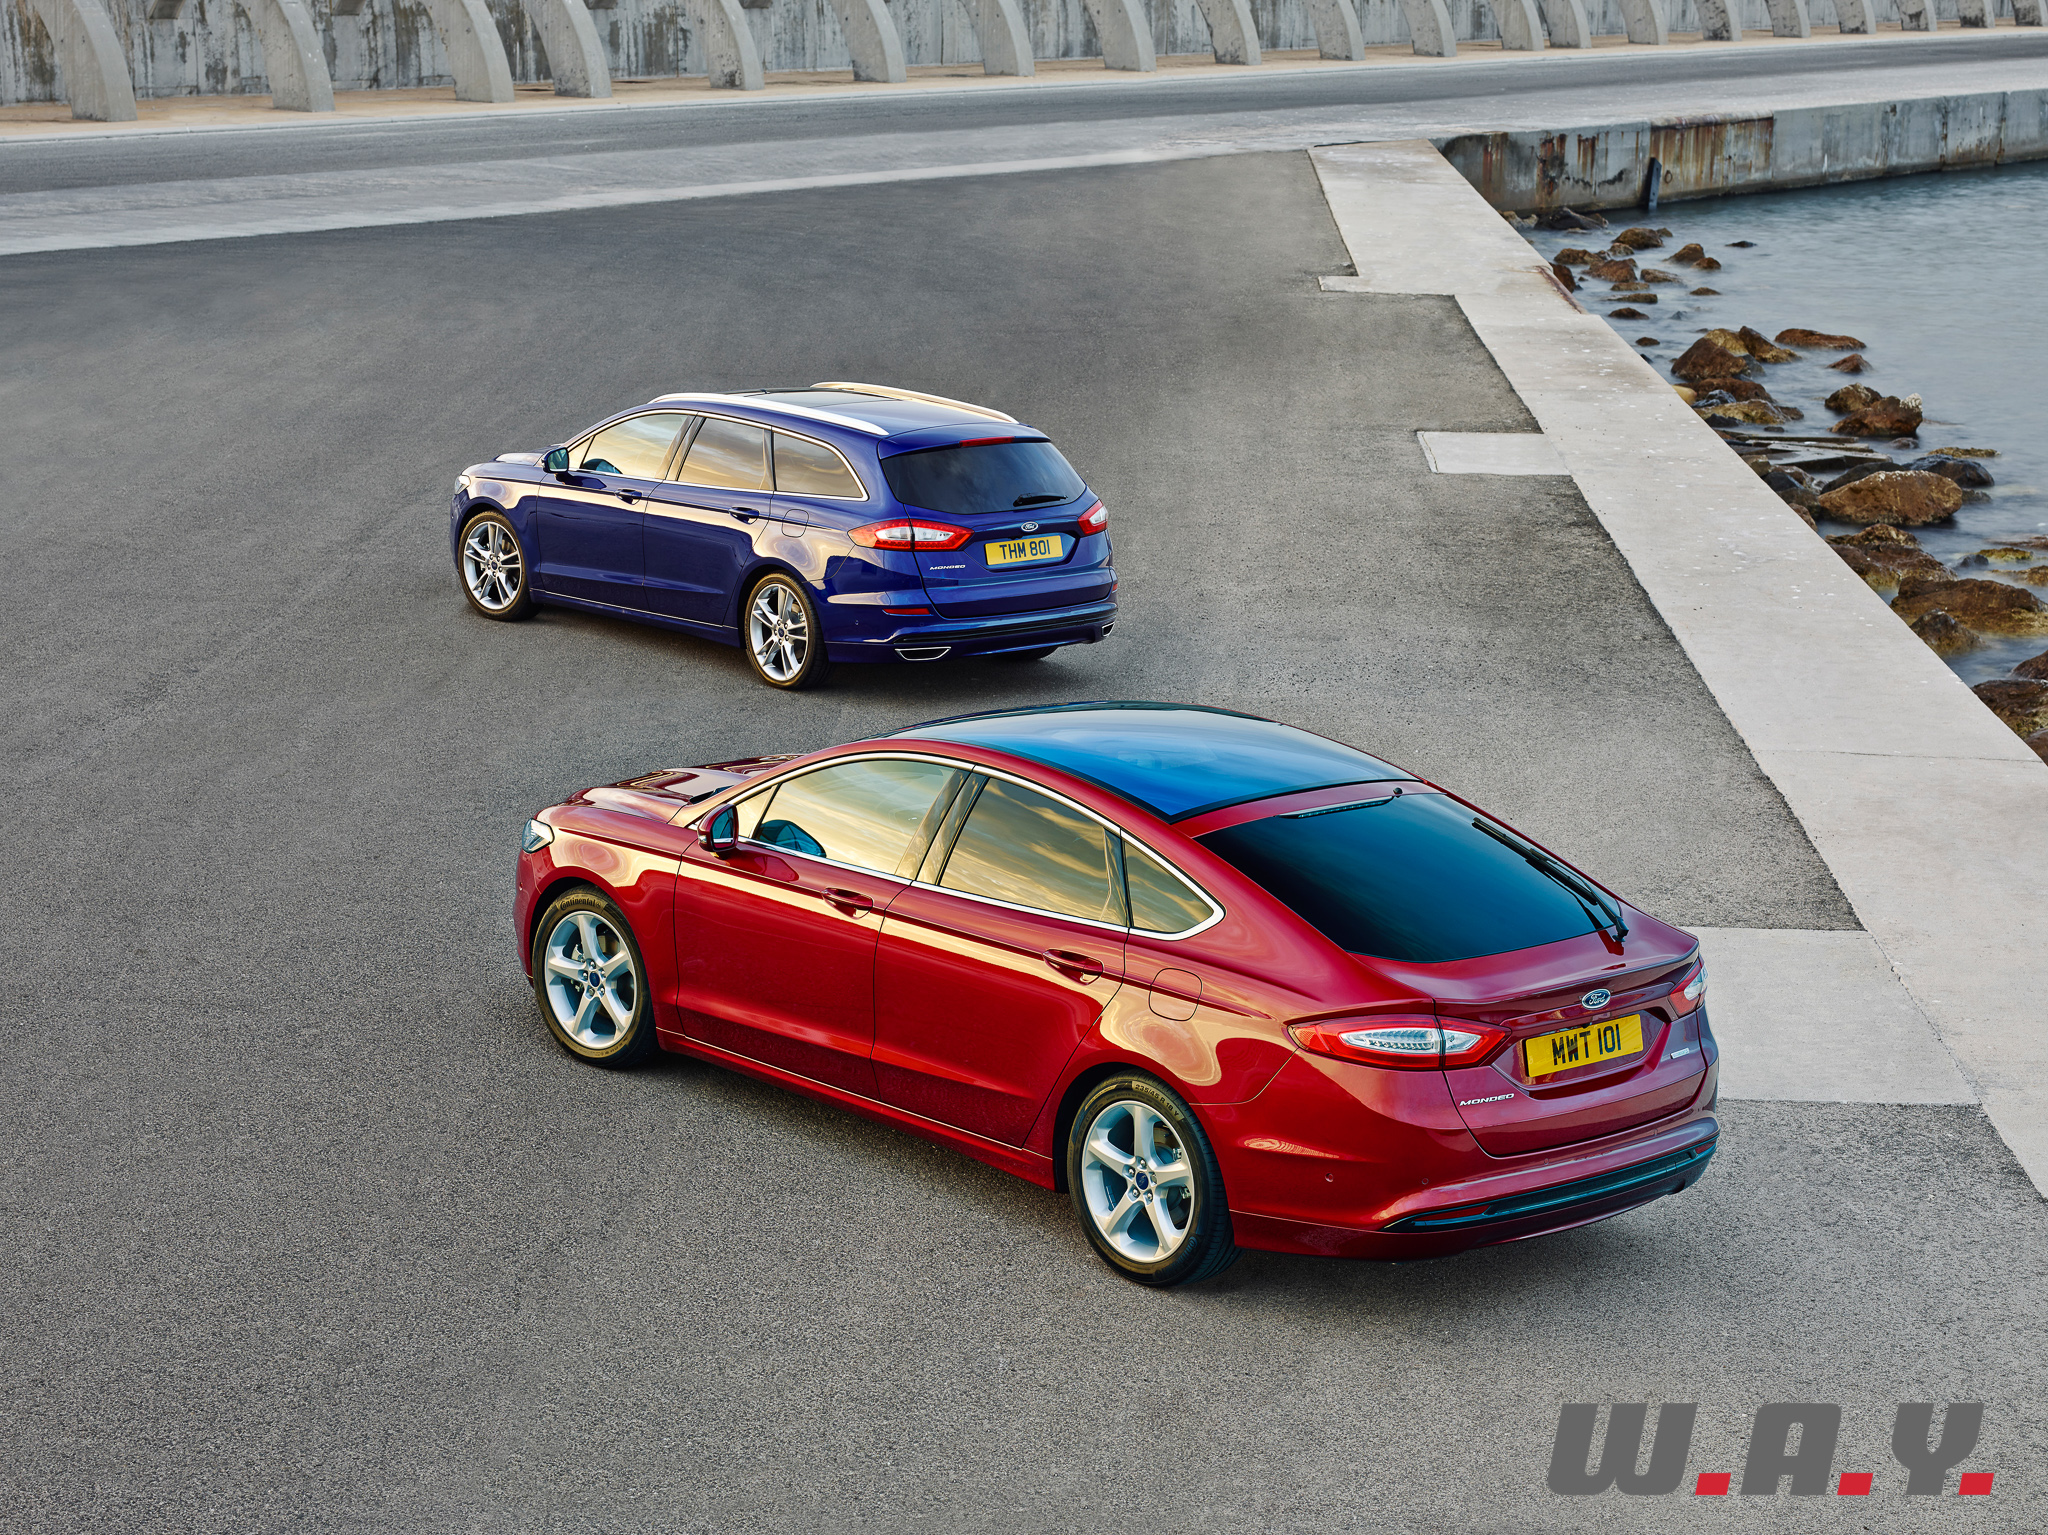 FordMondeo-1